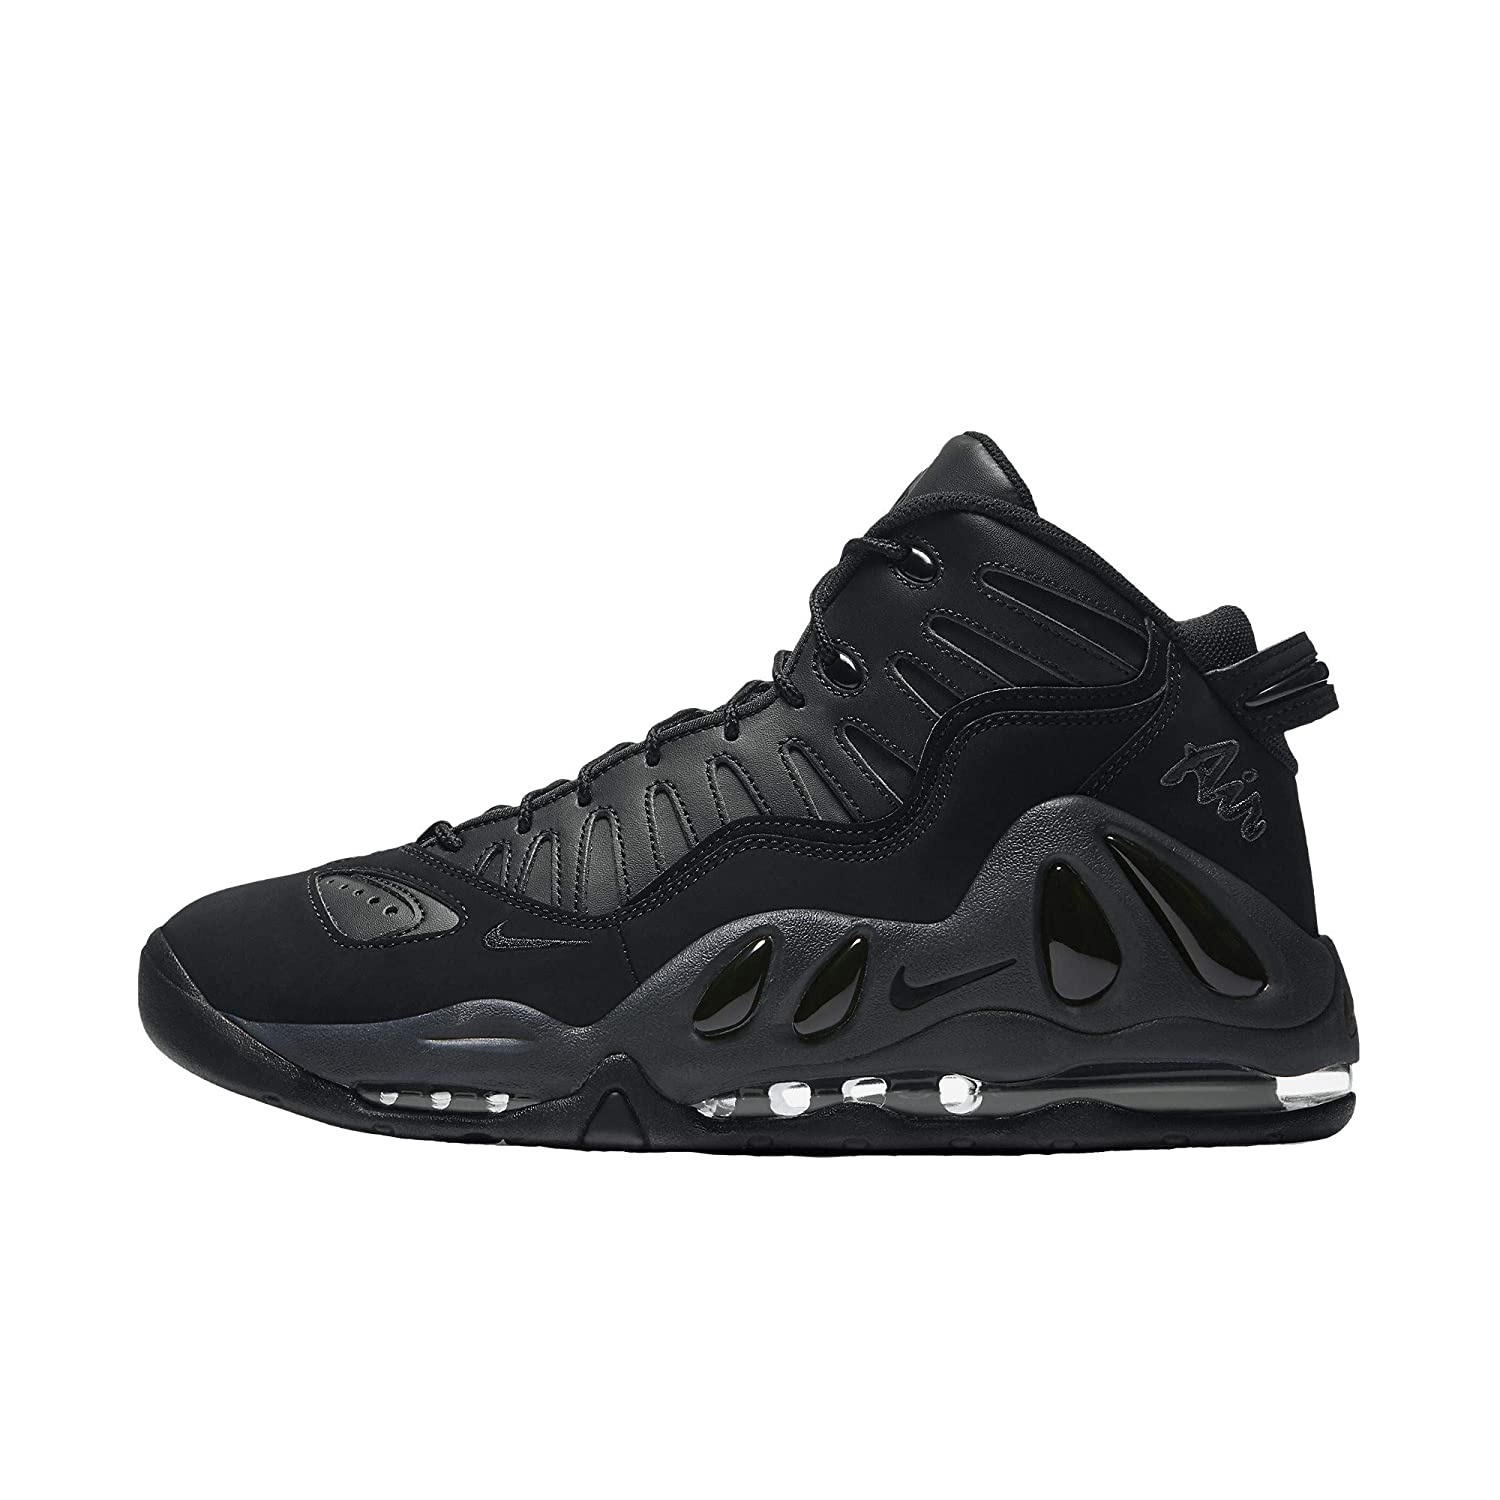 6dfe7c6be51 Nike Air Max Uptempo 97